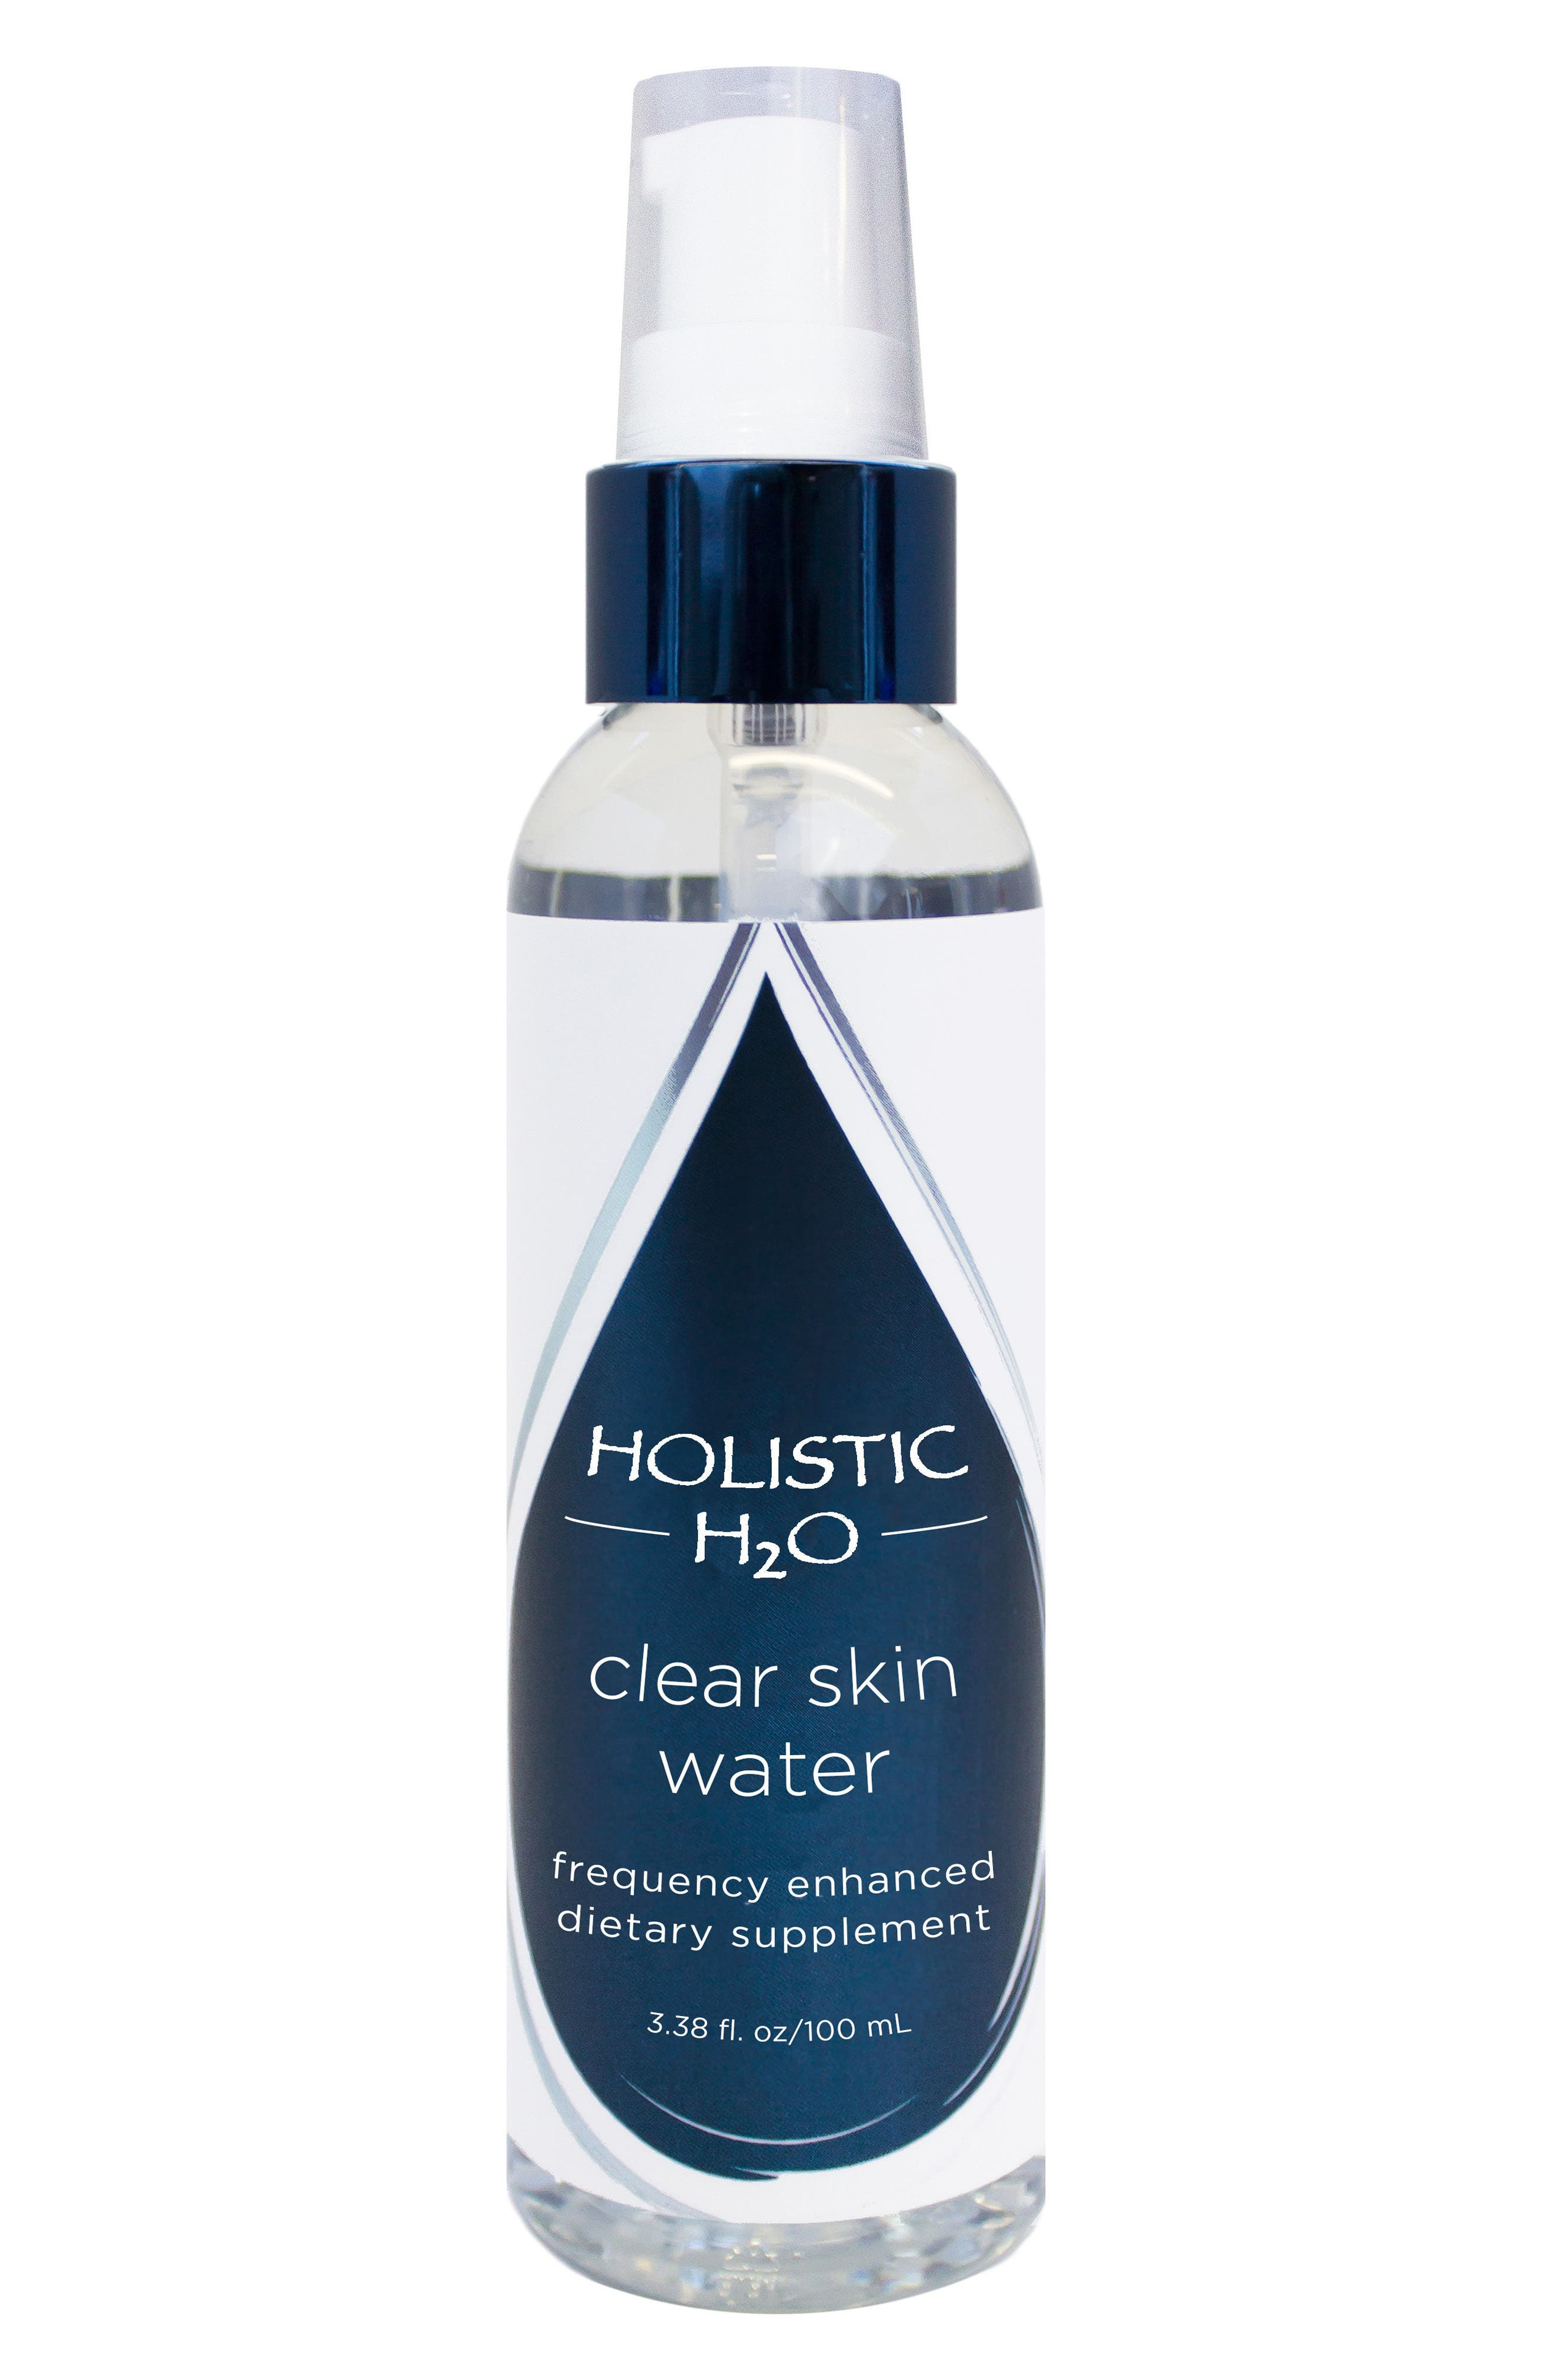 Holistic H20 Clear Skin Water Frequency Enhanced Dietary Supplement